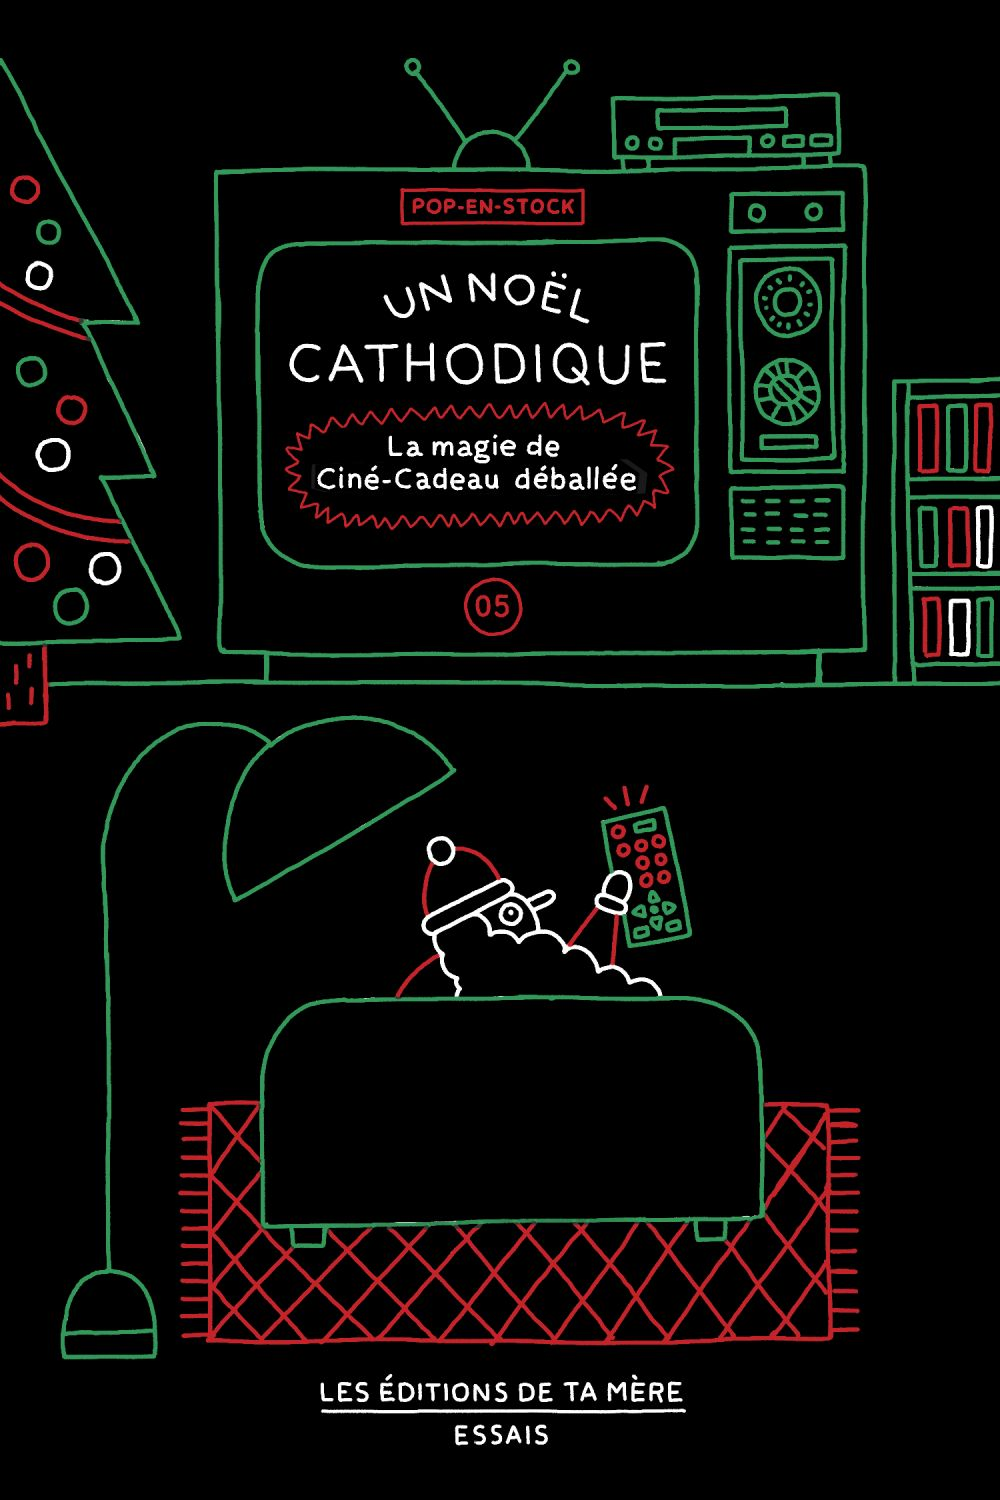 Un Noël cathodique